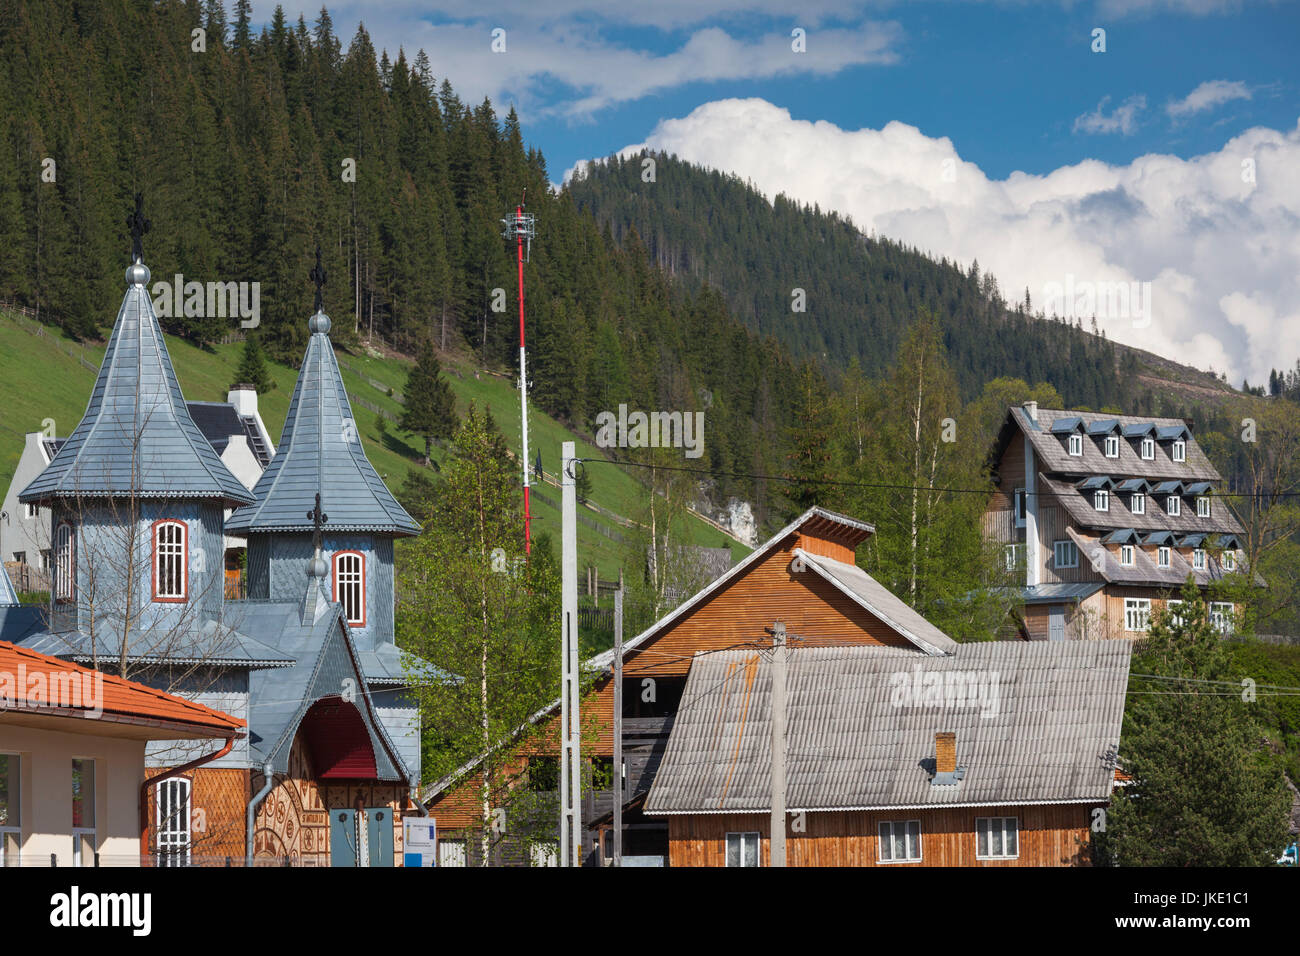 Romania, Bucovina Region, Rodna Mountains National Park, Sesuri, ski resort town, town Orthodox church Stock Photo